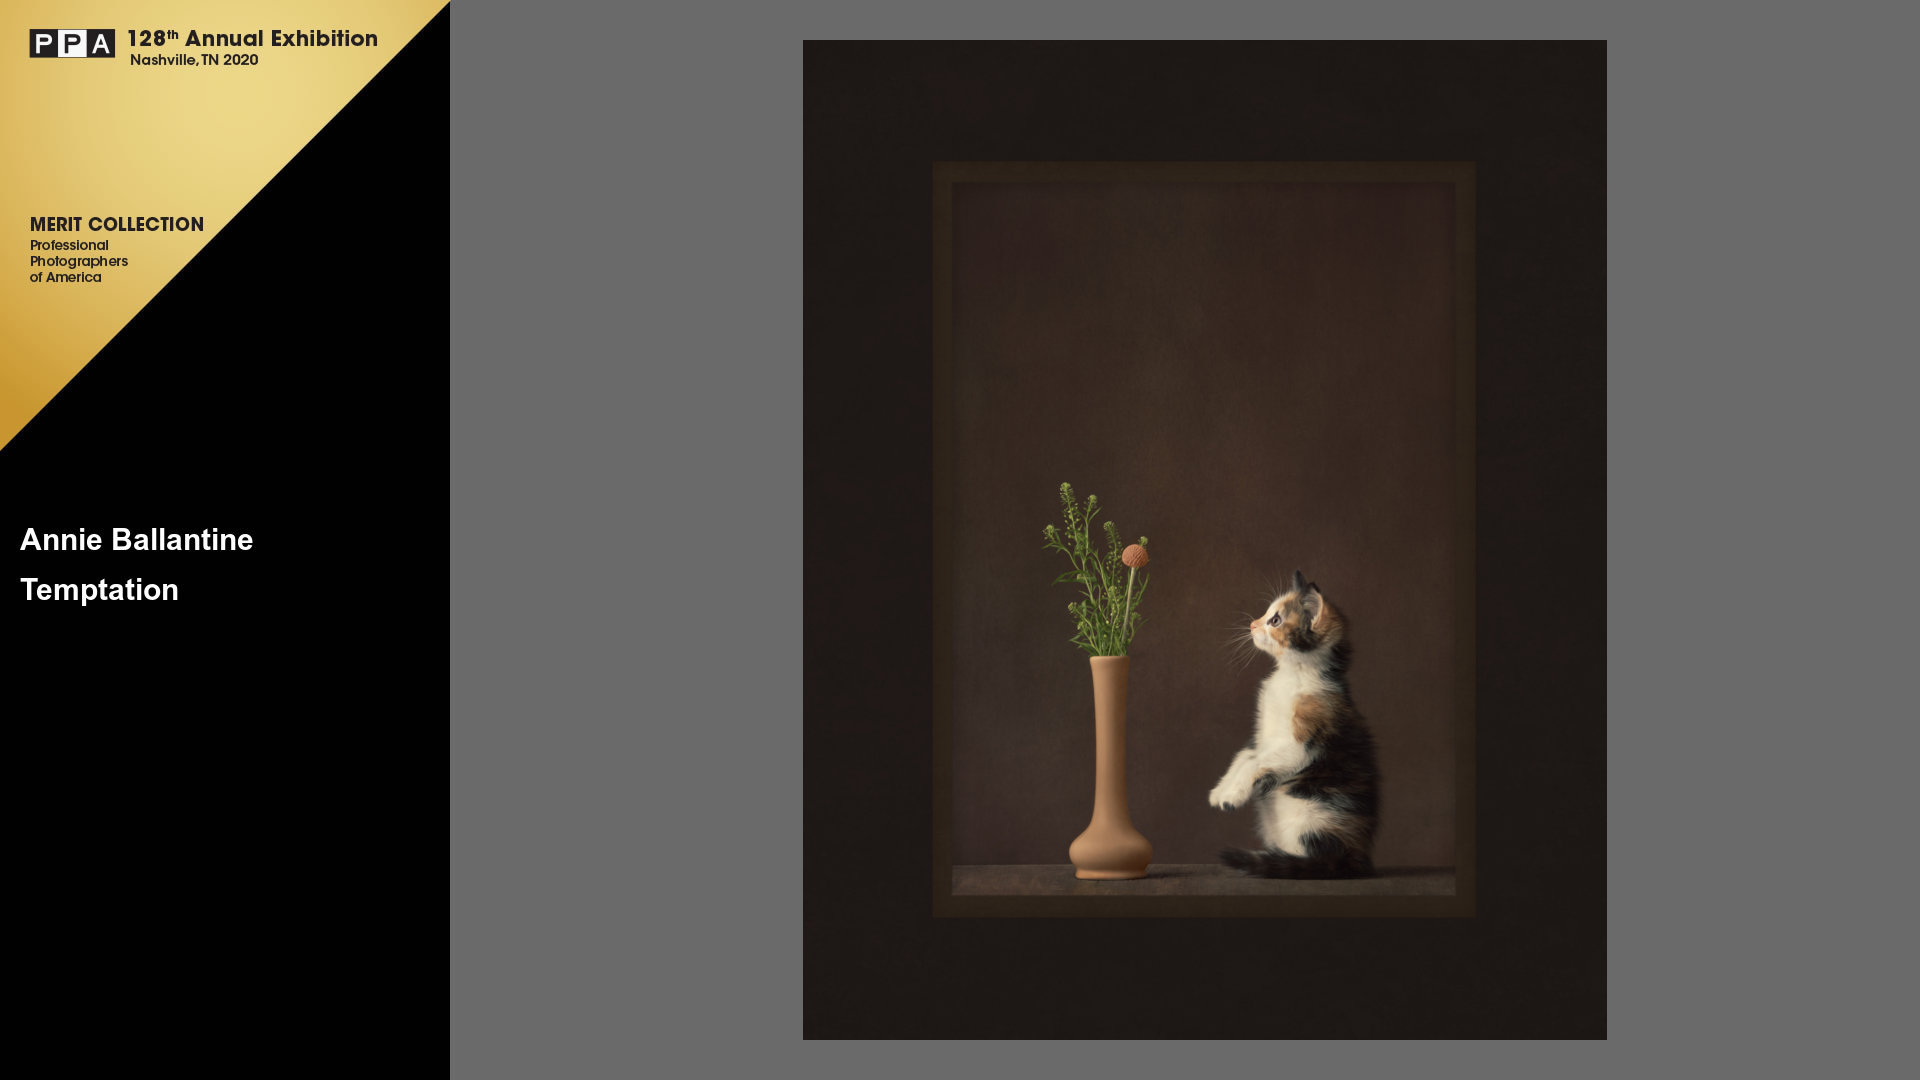 2019-international-photographic-competition-ipc-merit-image-kitten-flowers-studio